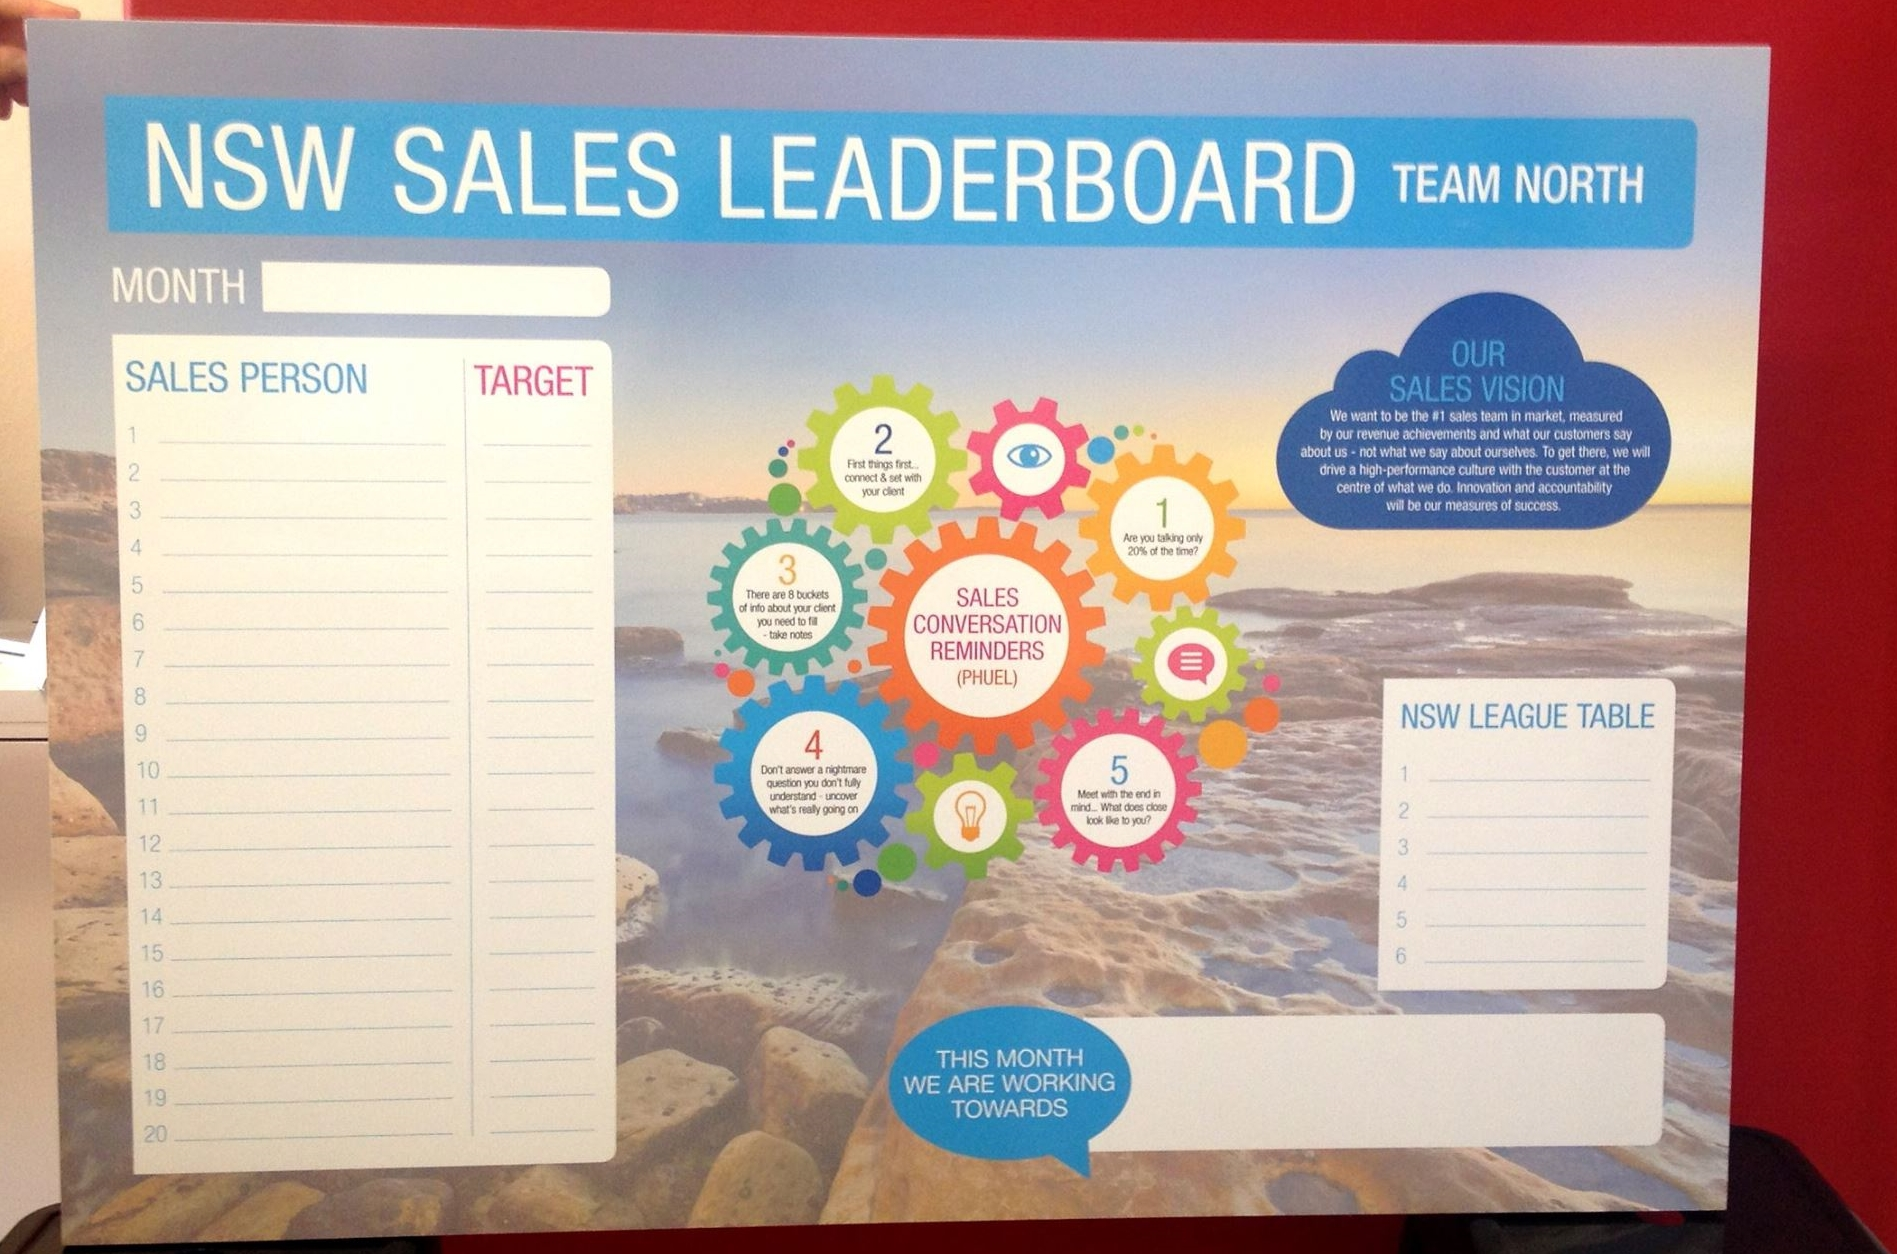 Fairfax Sales Leader Boards